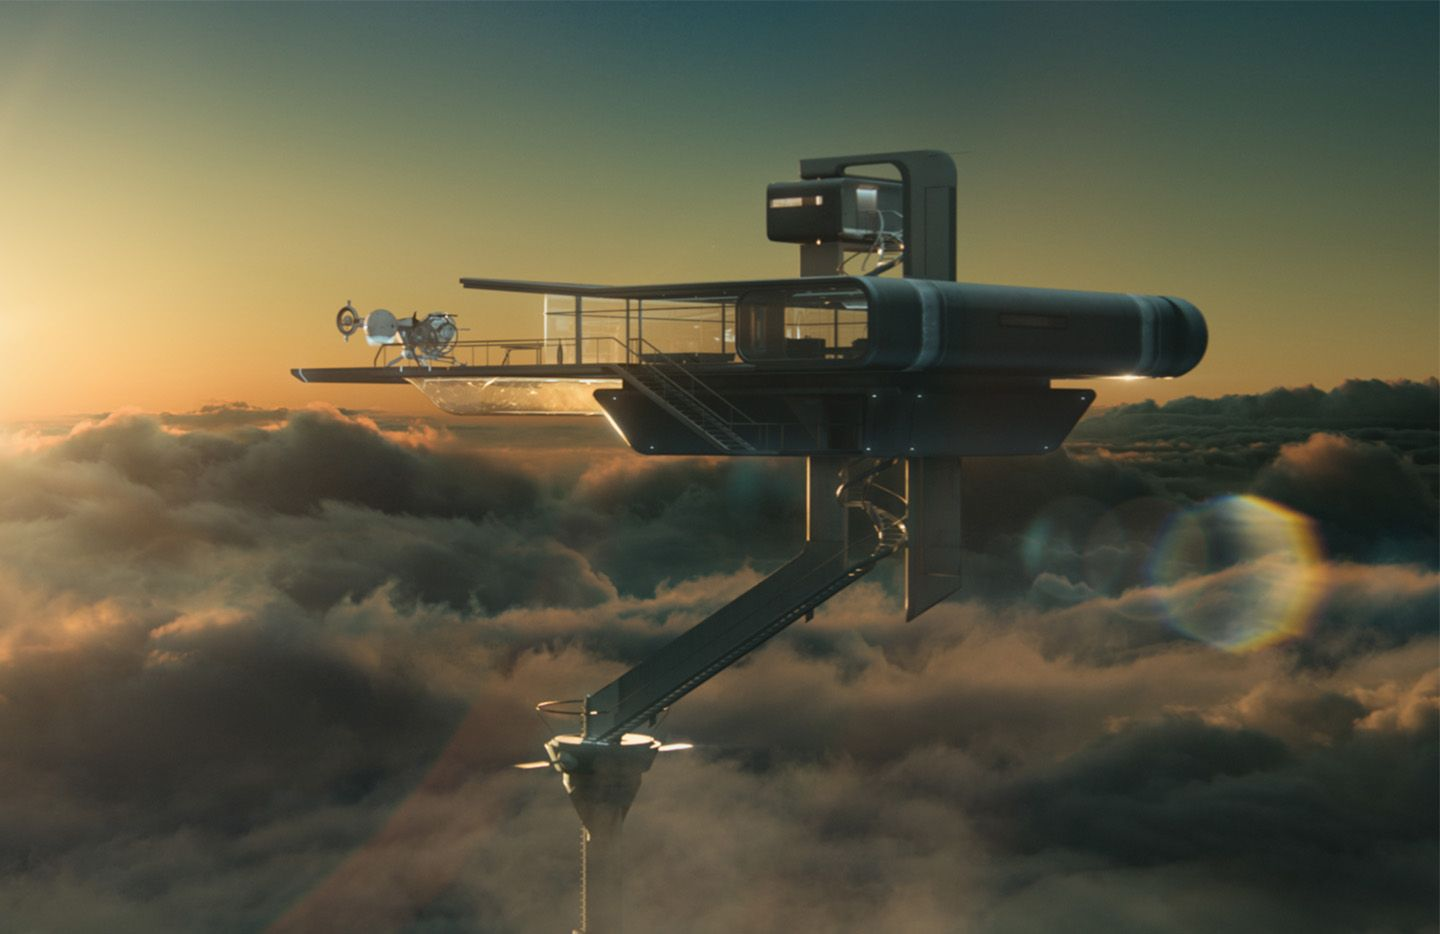 Youll Find Forevertron Behind Sea Of_27 >> My Next House In The Clouds Tom Cruise Oblivion Friday Houses